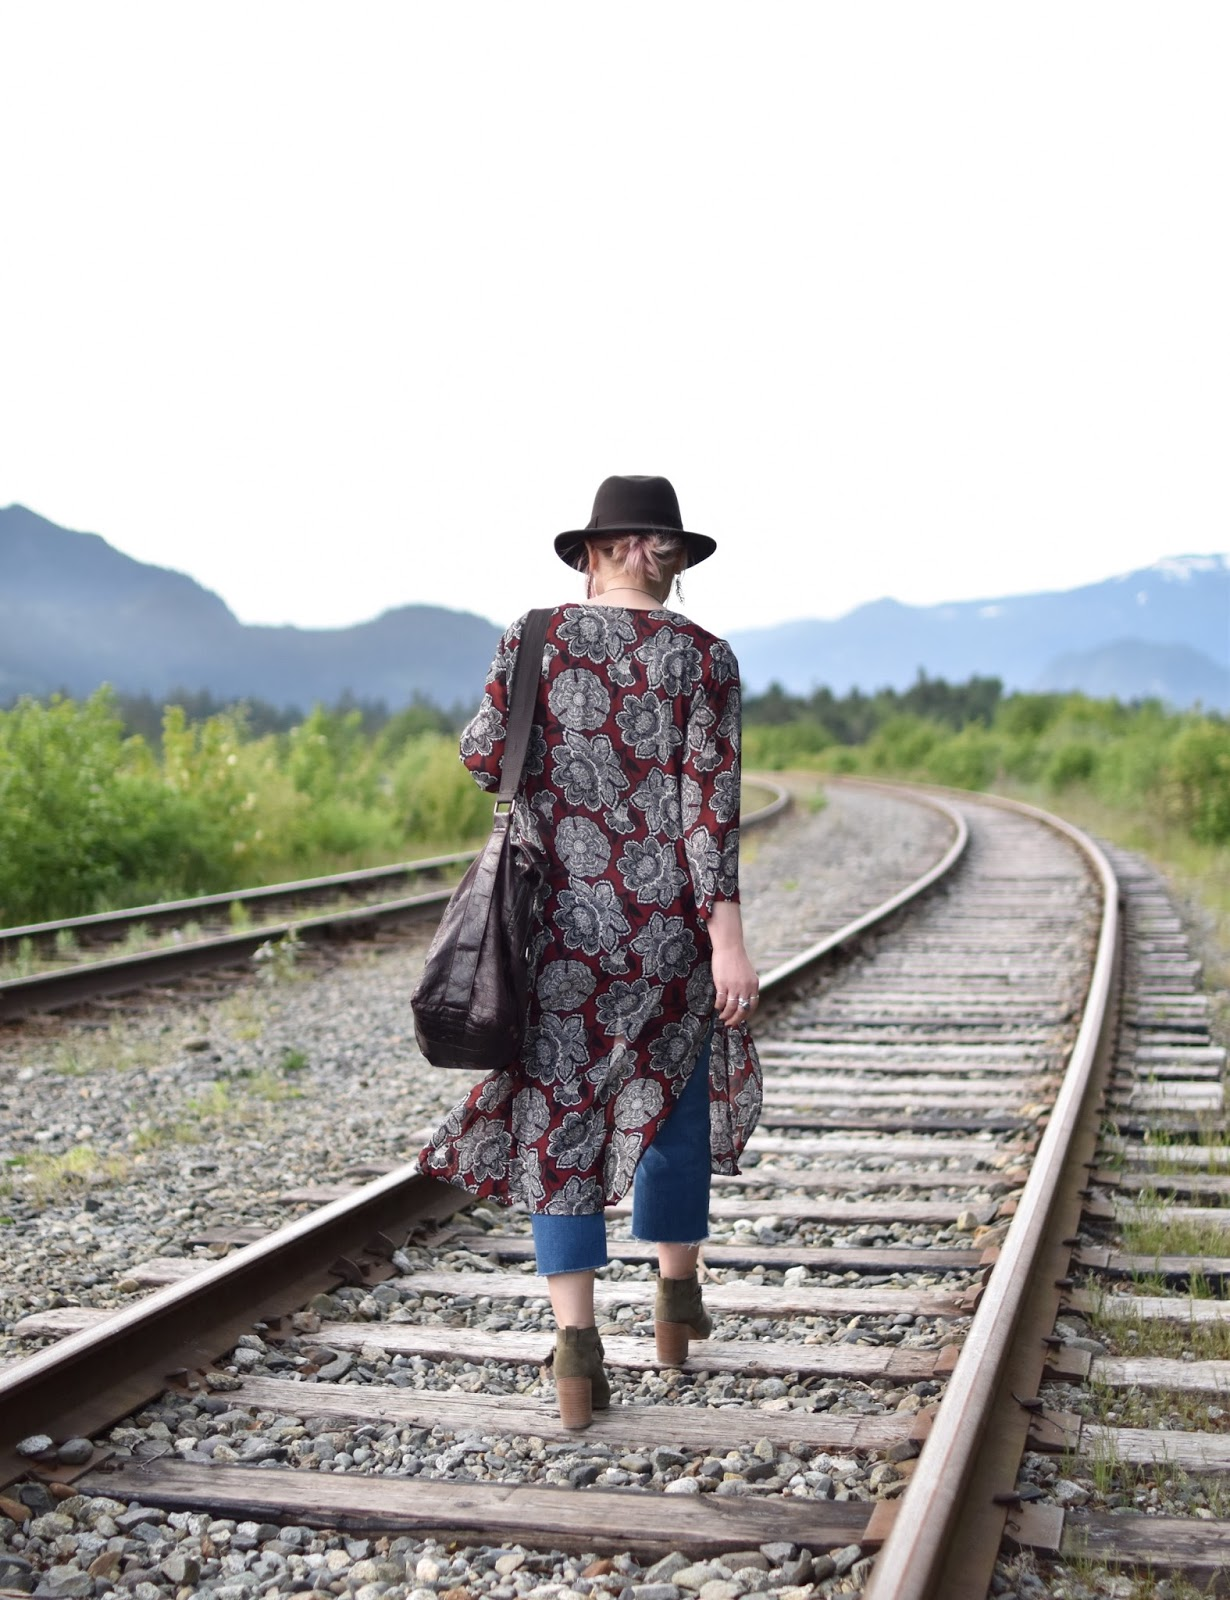 Monika Faulkner outfit inspiration - cropped jeans, floral kimono, ankle boots, felt fedora